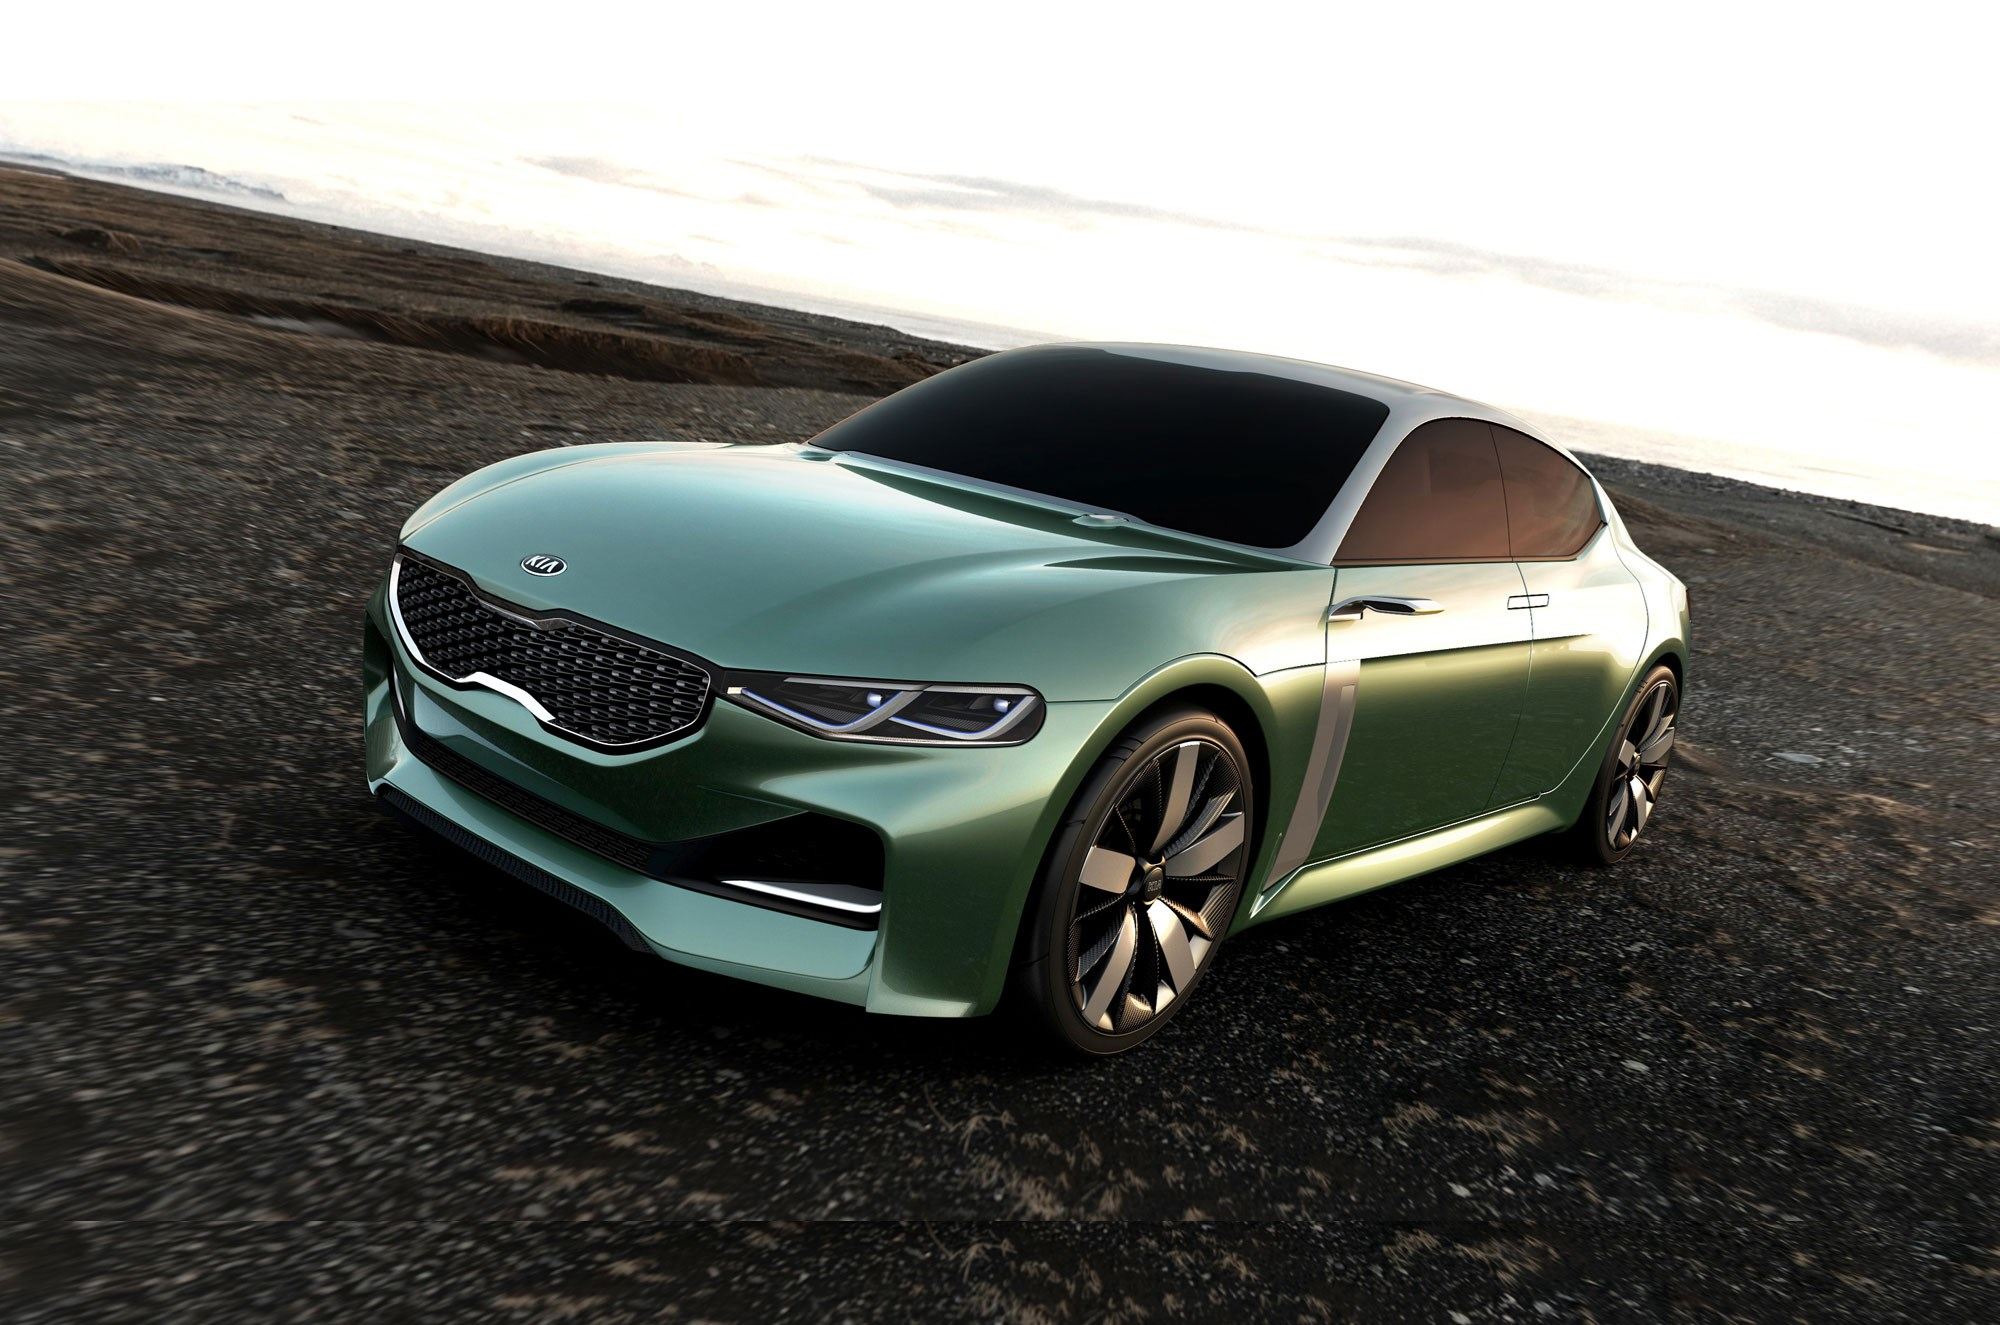 kia novo concept 2015 it s another interesting kia by car magazine. Black Bedroom Furniture Sets. Home Design Ideas